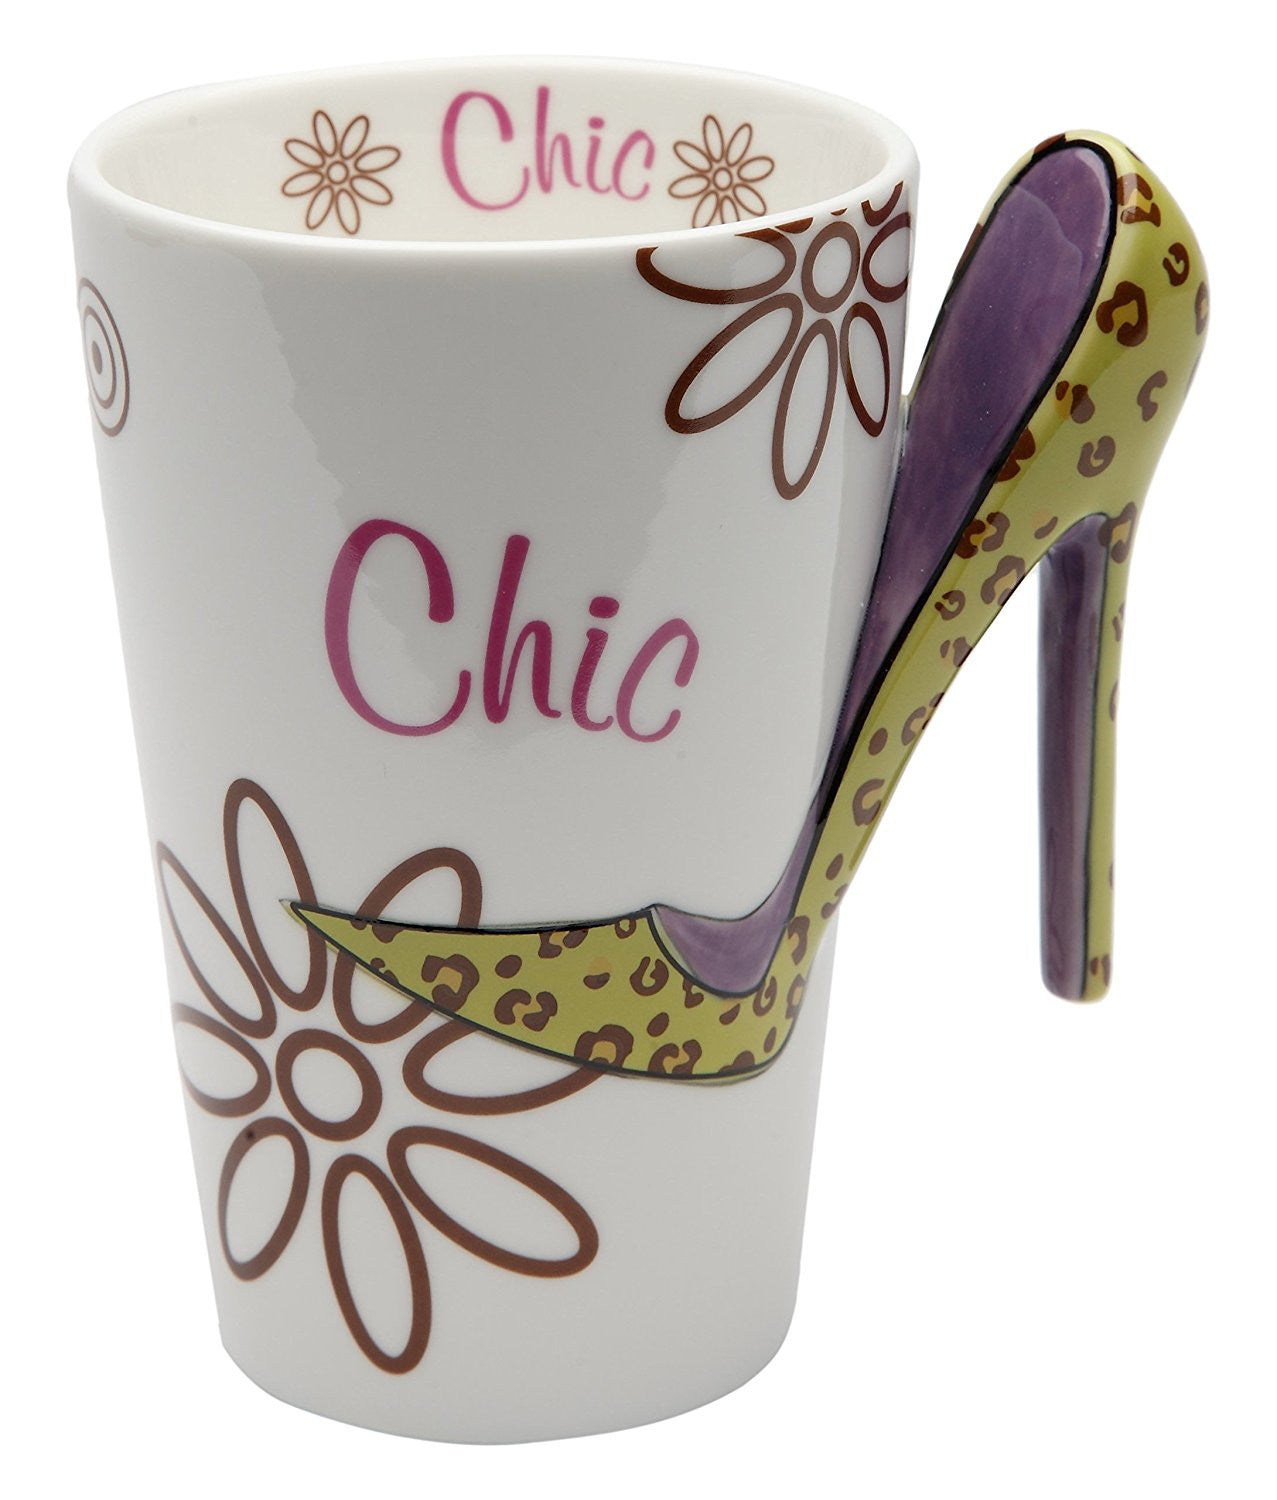 Chic Ceramic Mug with Stiletto Handle by Cosmos Gifts